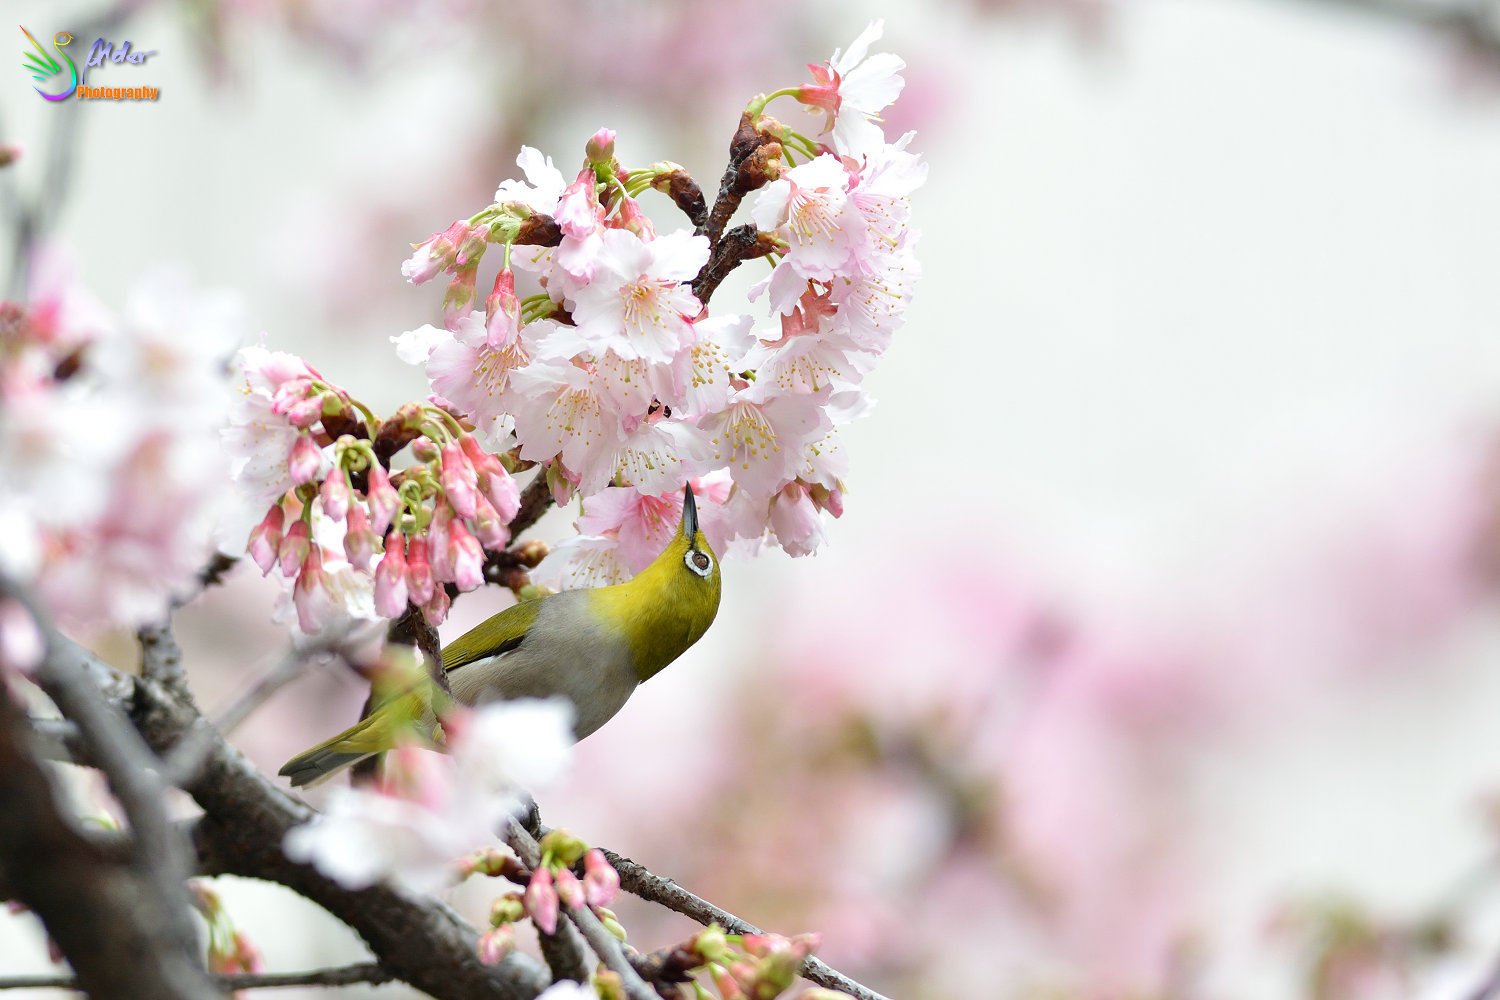 Sakura_White-eye_6719